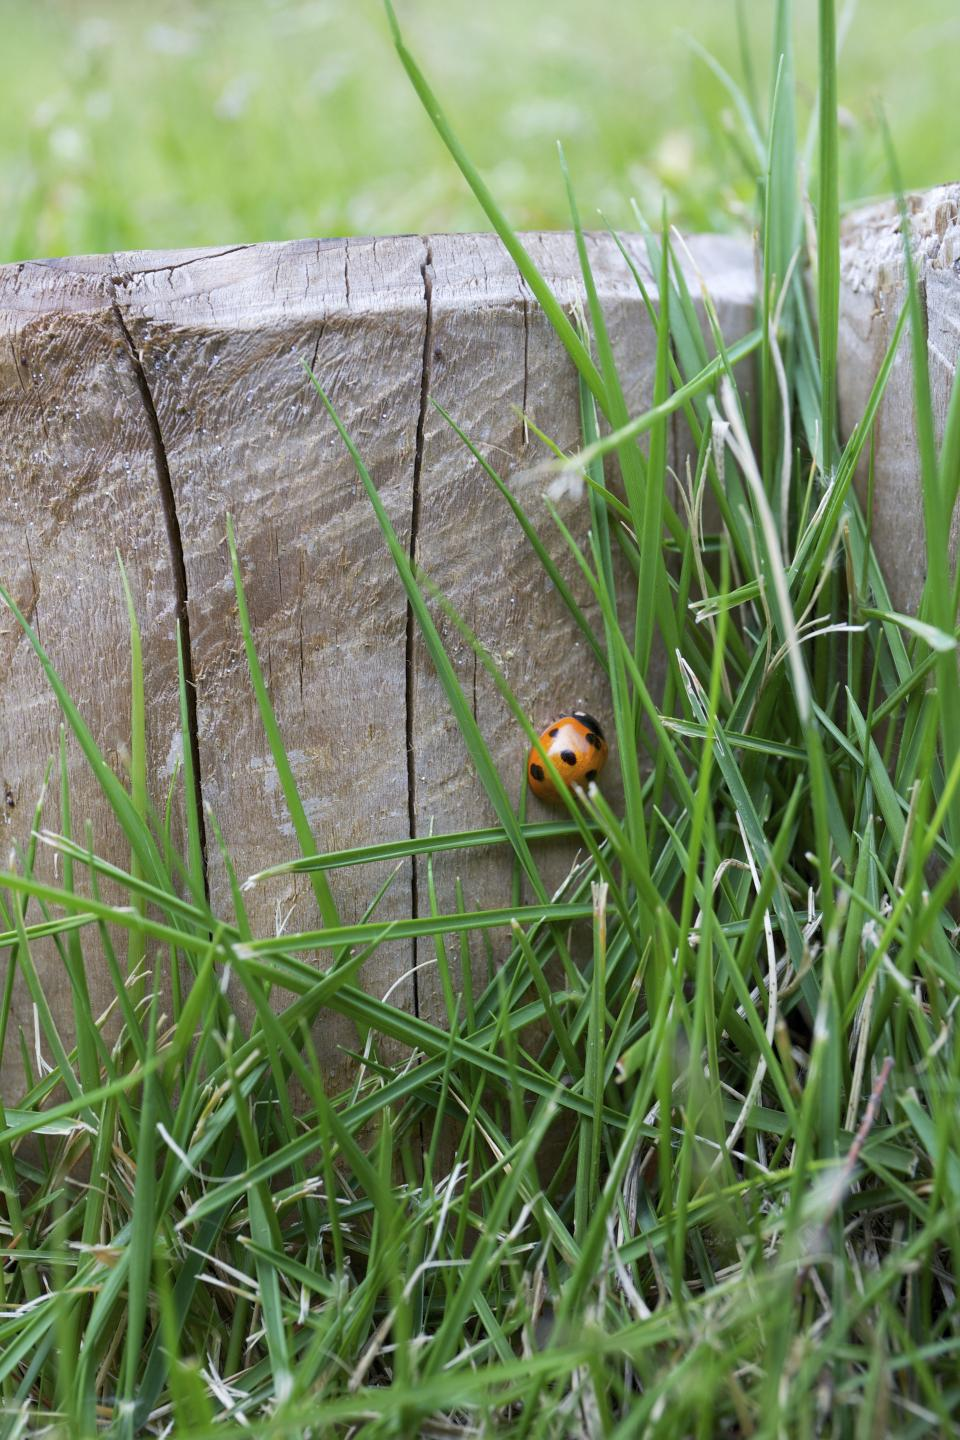 lady bug, insect, green, leaves, grass, spot